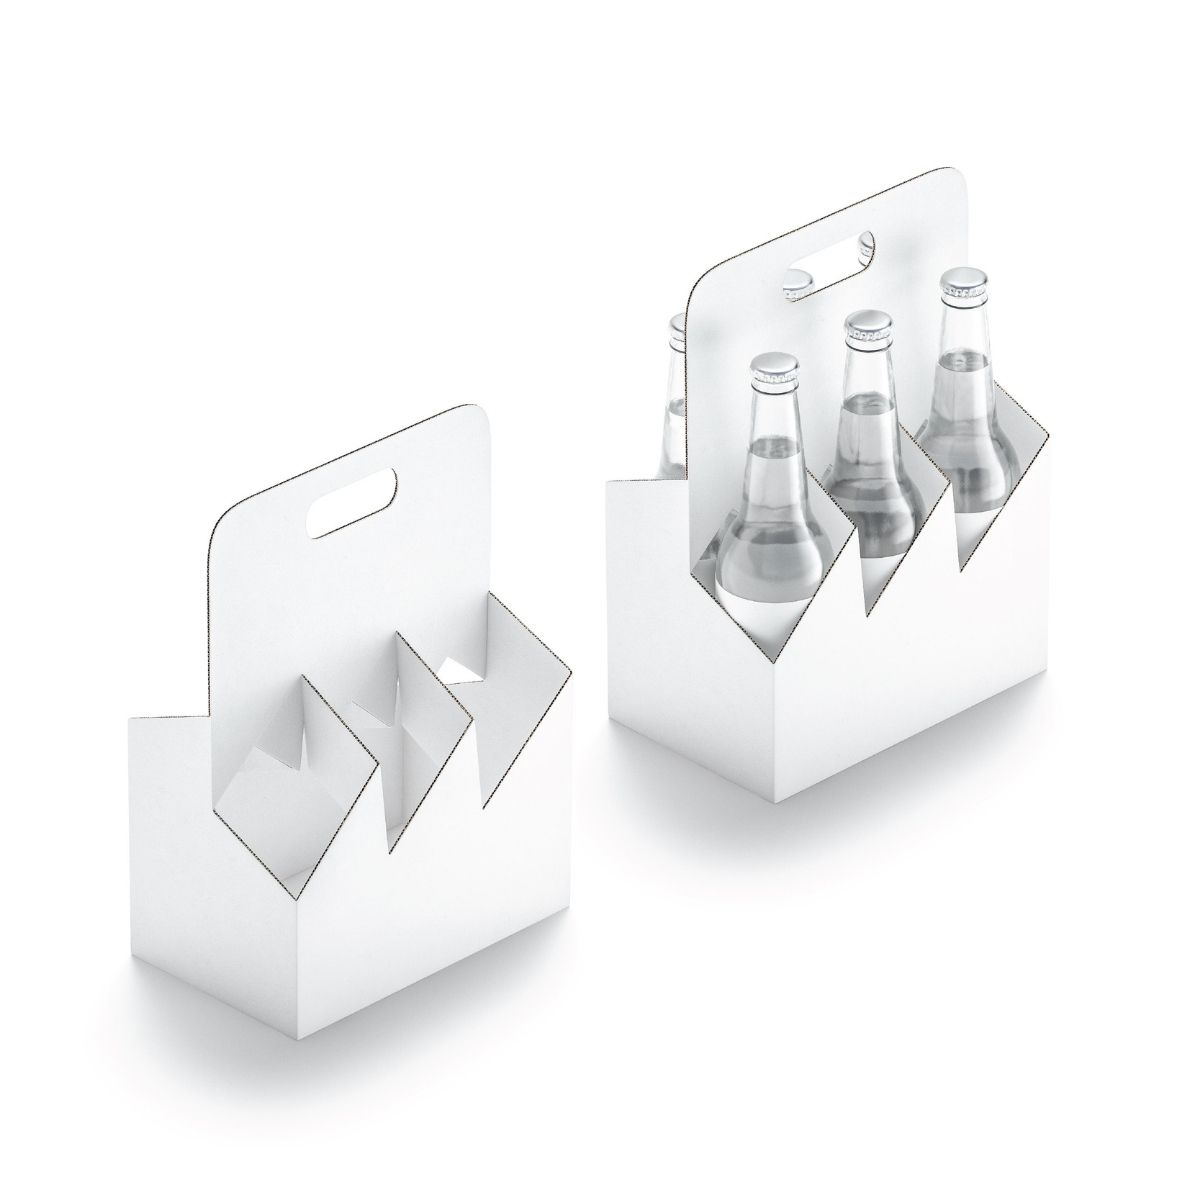 Six-Pack Holder For Proper Organization of Your Refrigerator